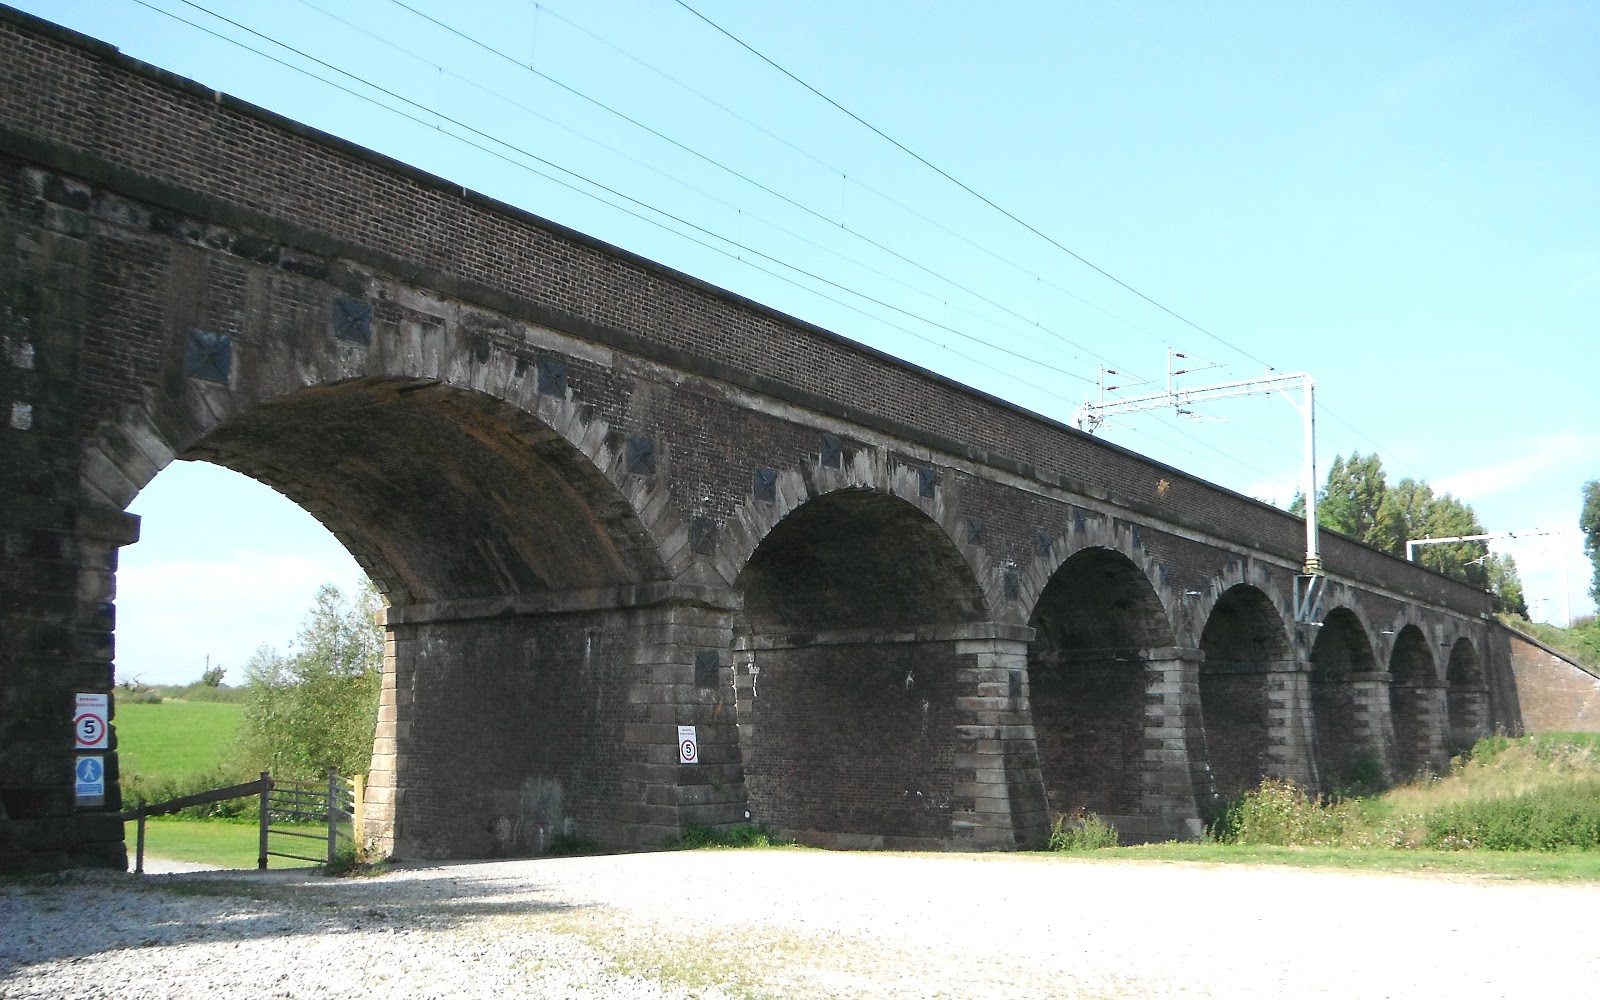 Penkridge Railway Viaduct